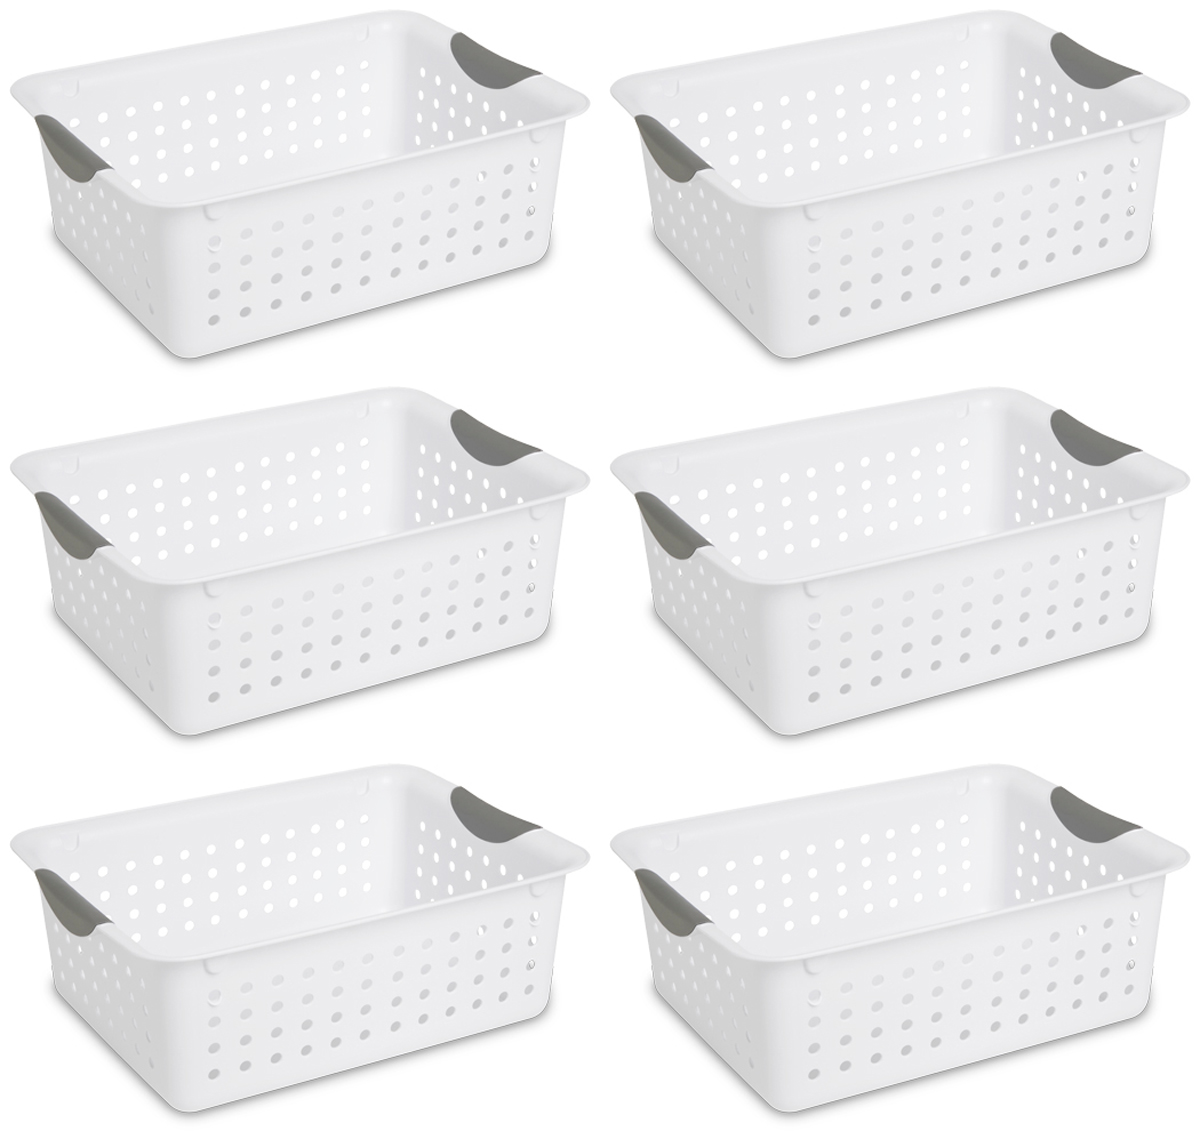 Sterilite Medium Ultra Plastic Storage Organizer Basket, White (6 Pack) 16248006